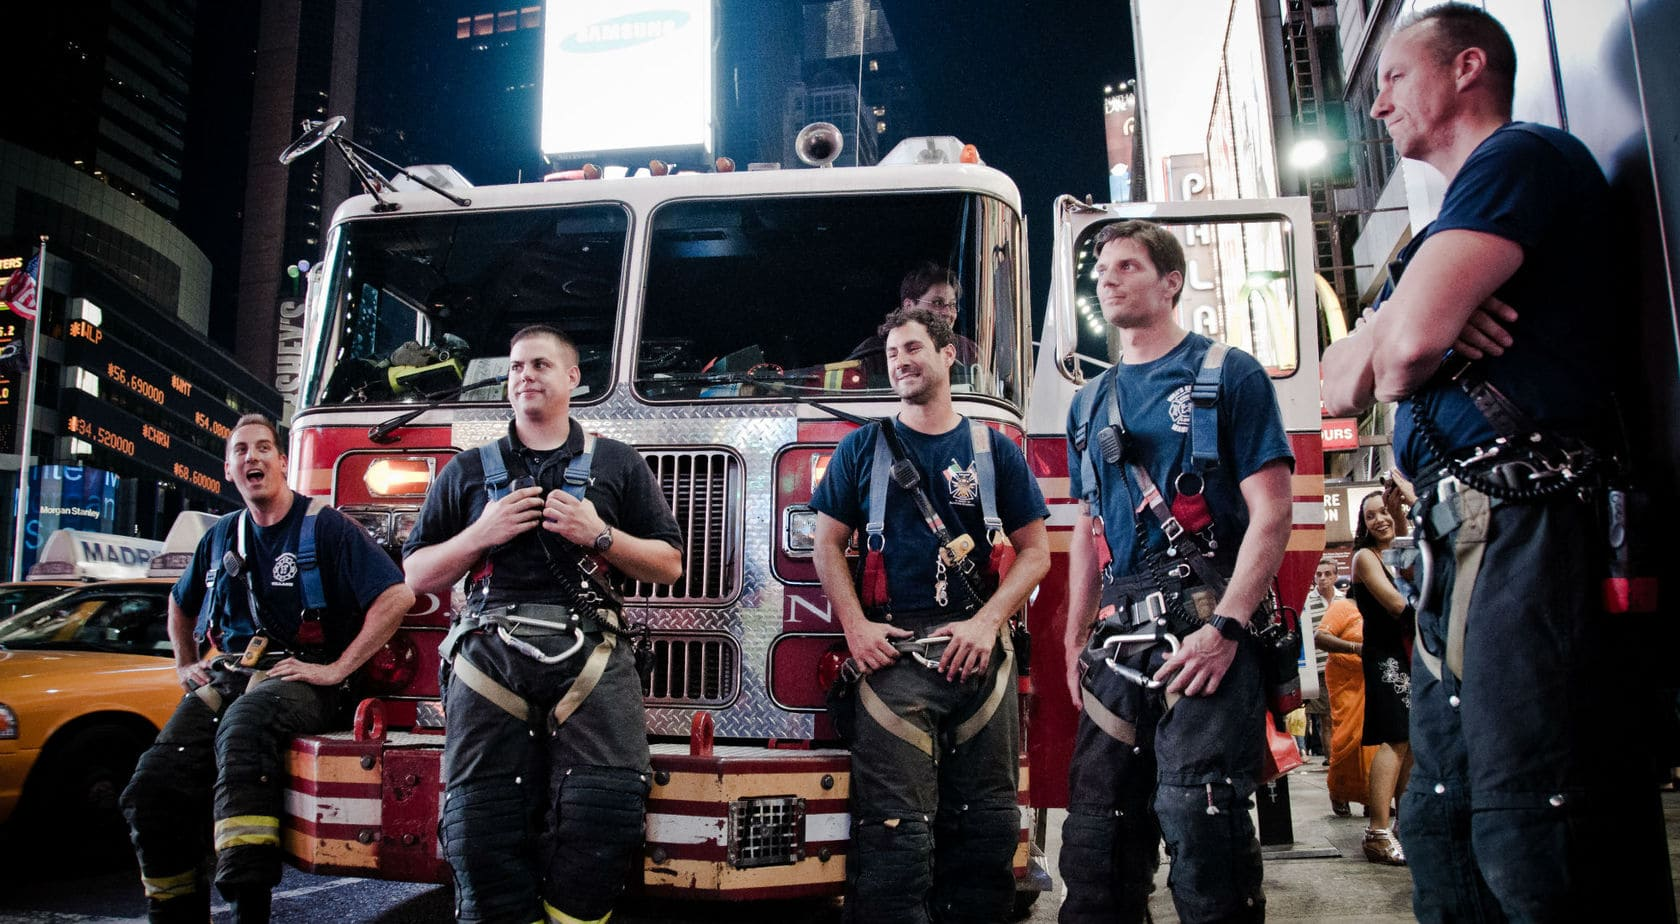 New York City firemen rest after they put out a fire.